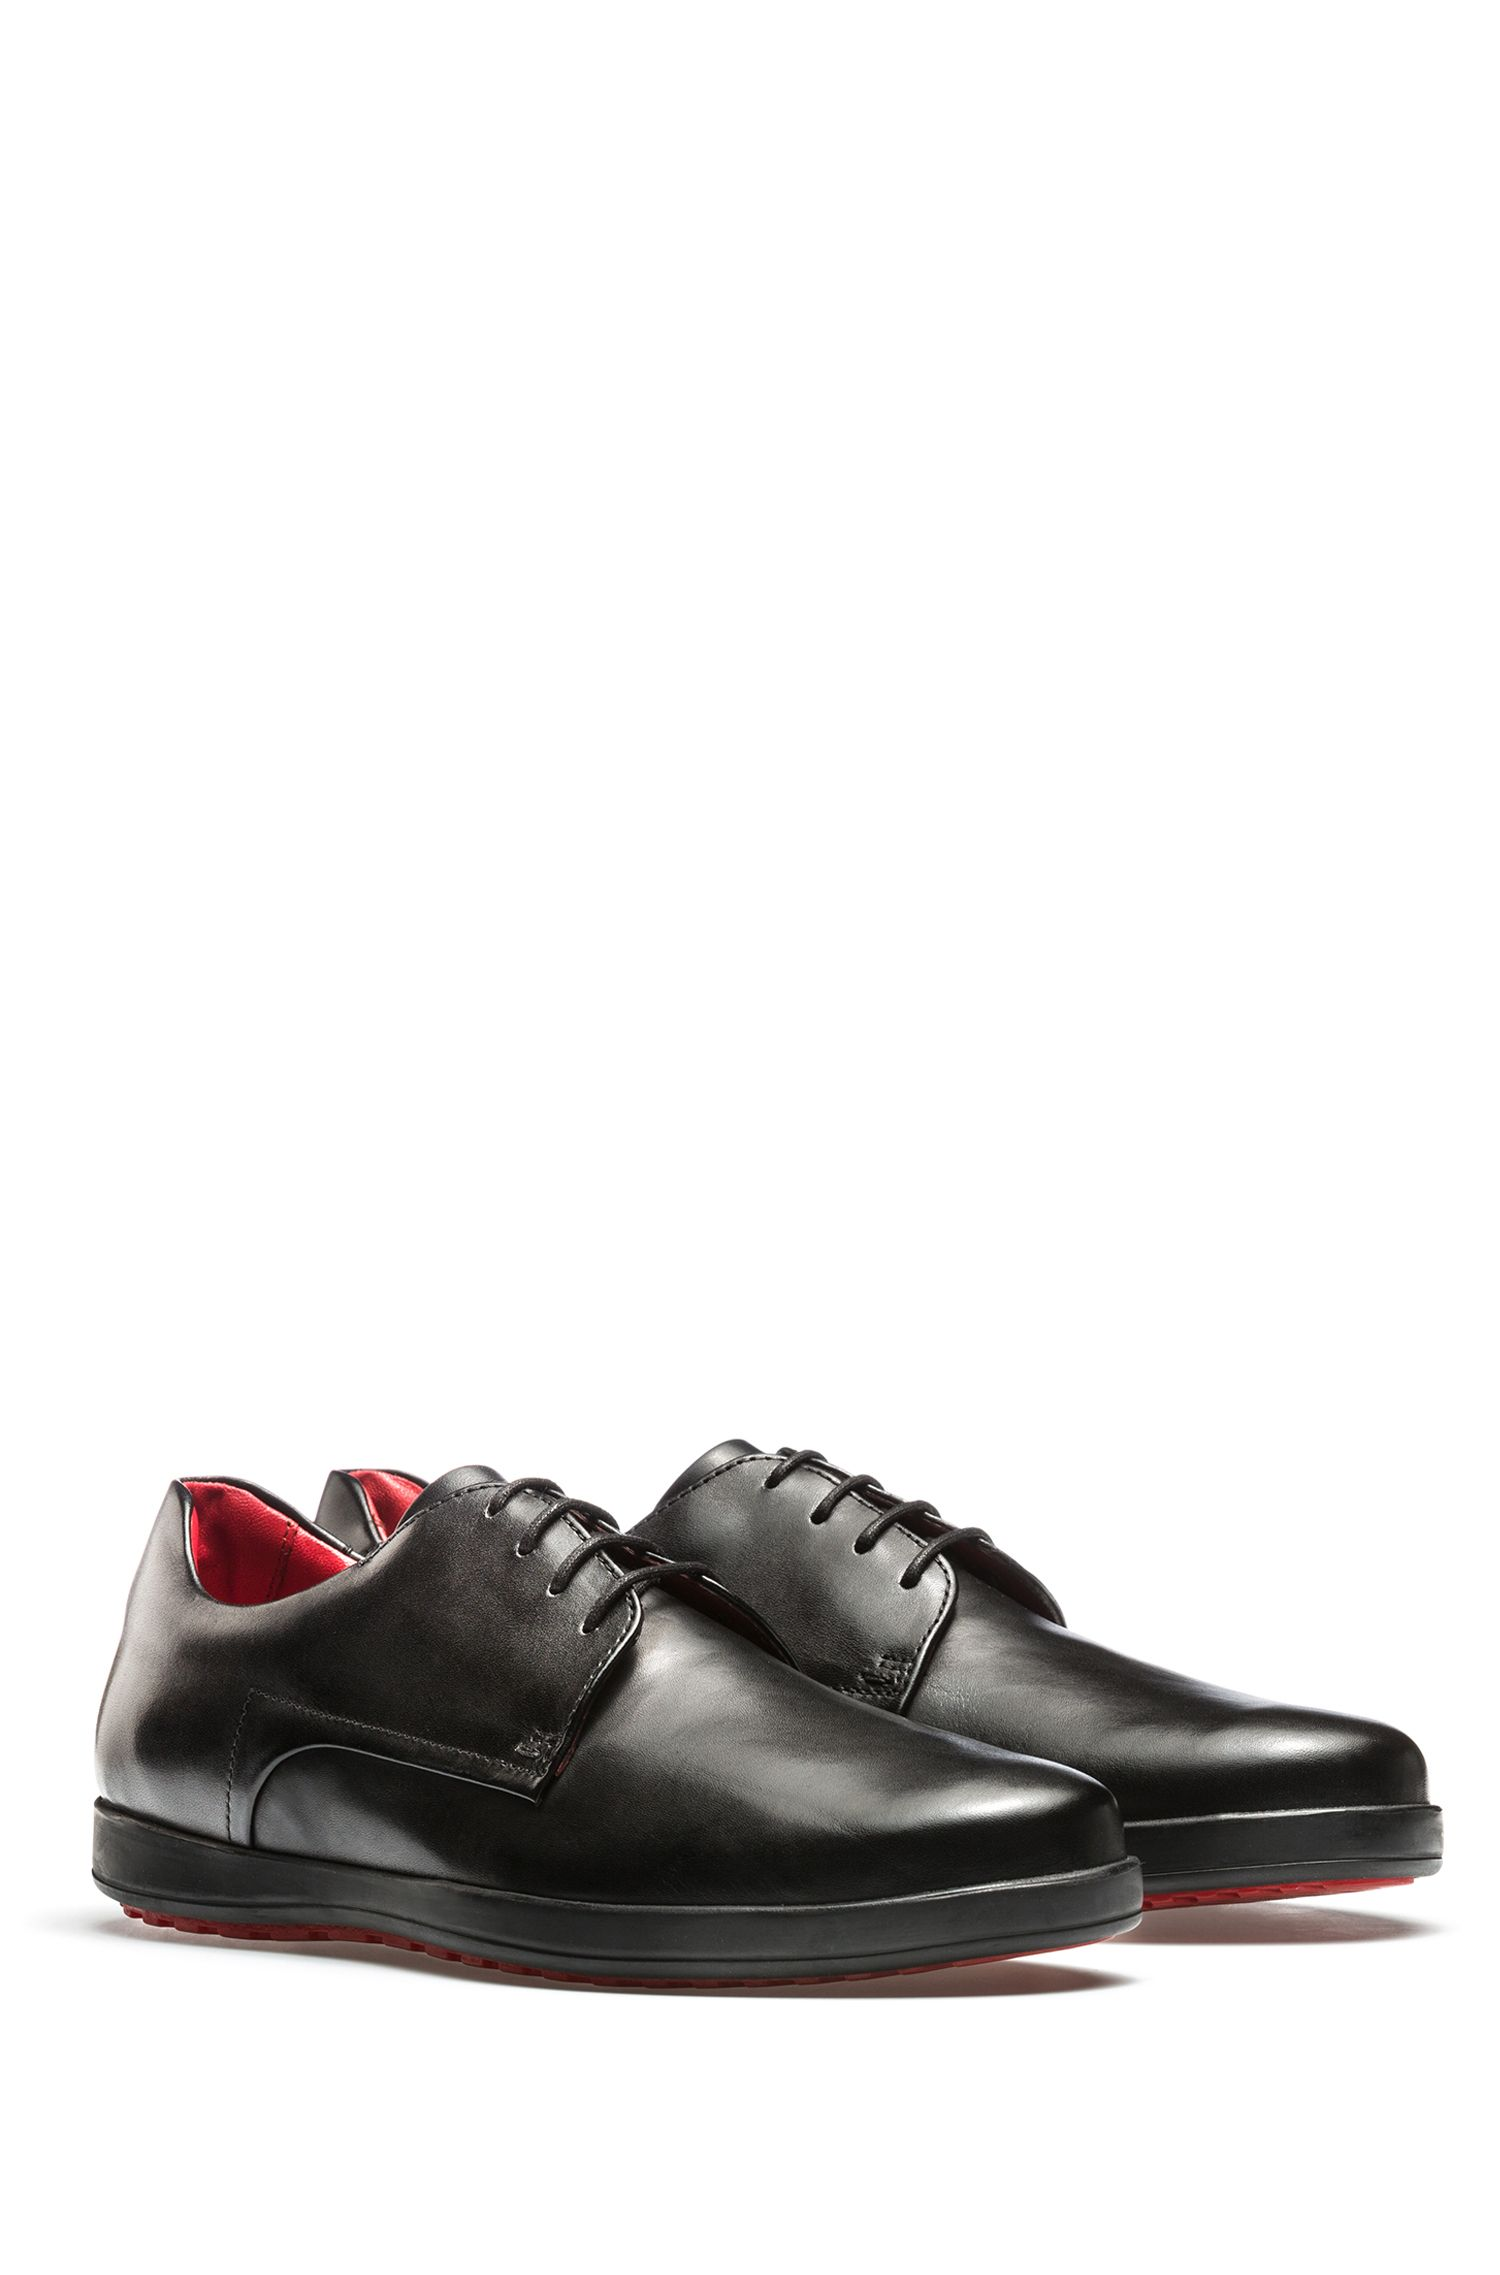 Calf-leather Derby shoes with rubber sole